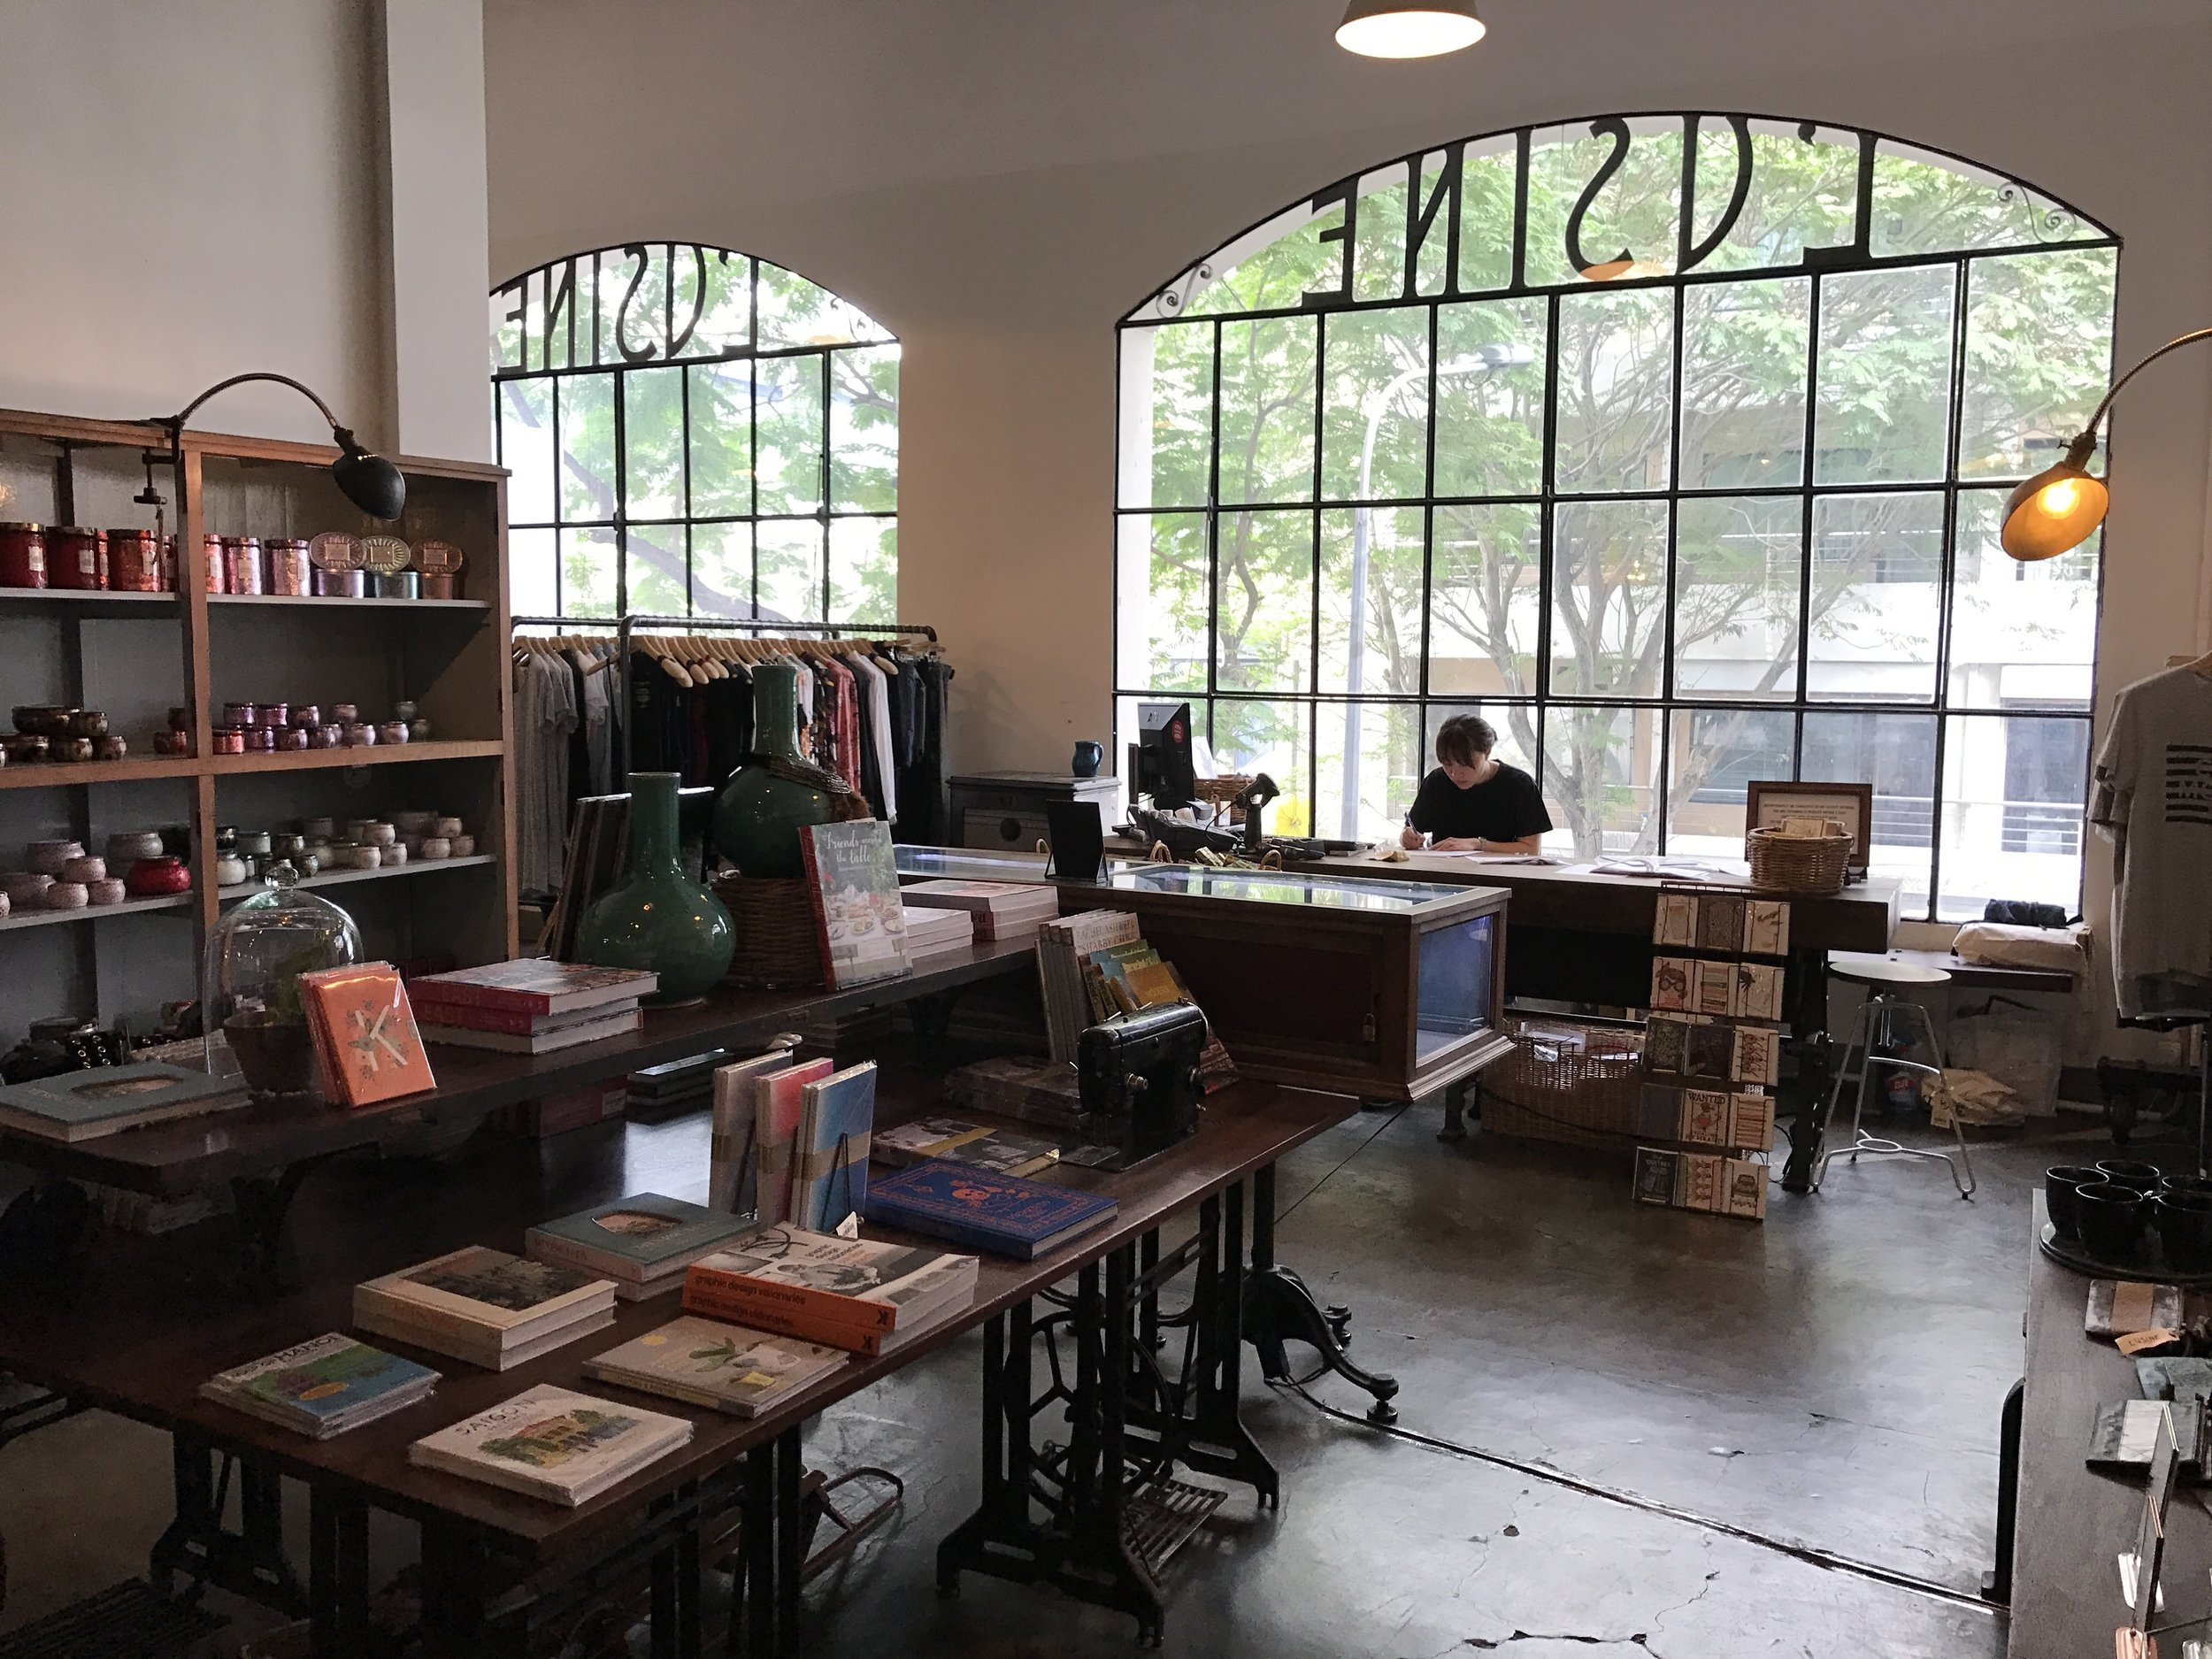 You'll want to buy everything at L'Usine's s